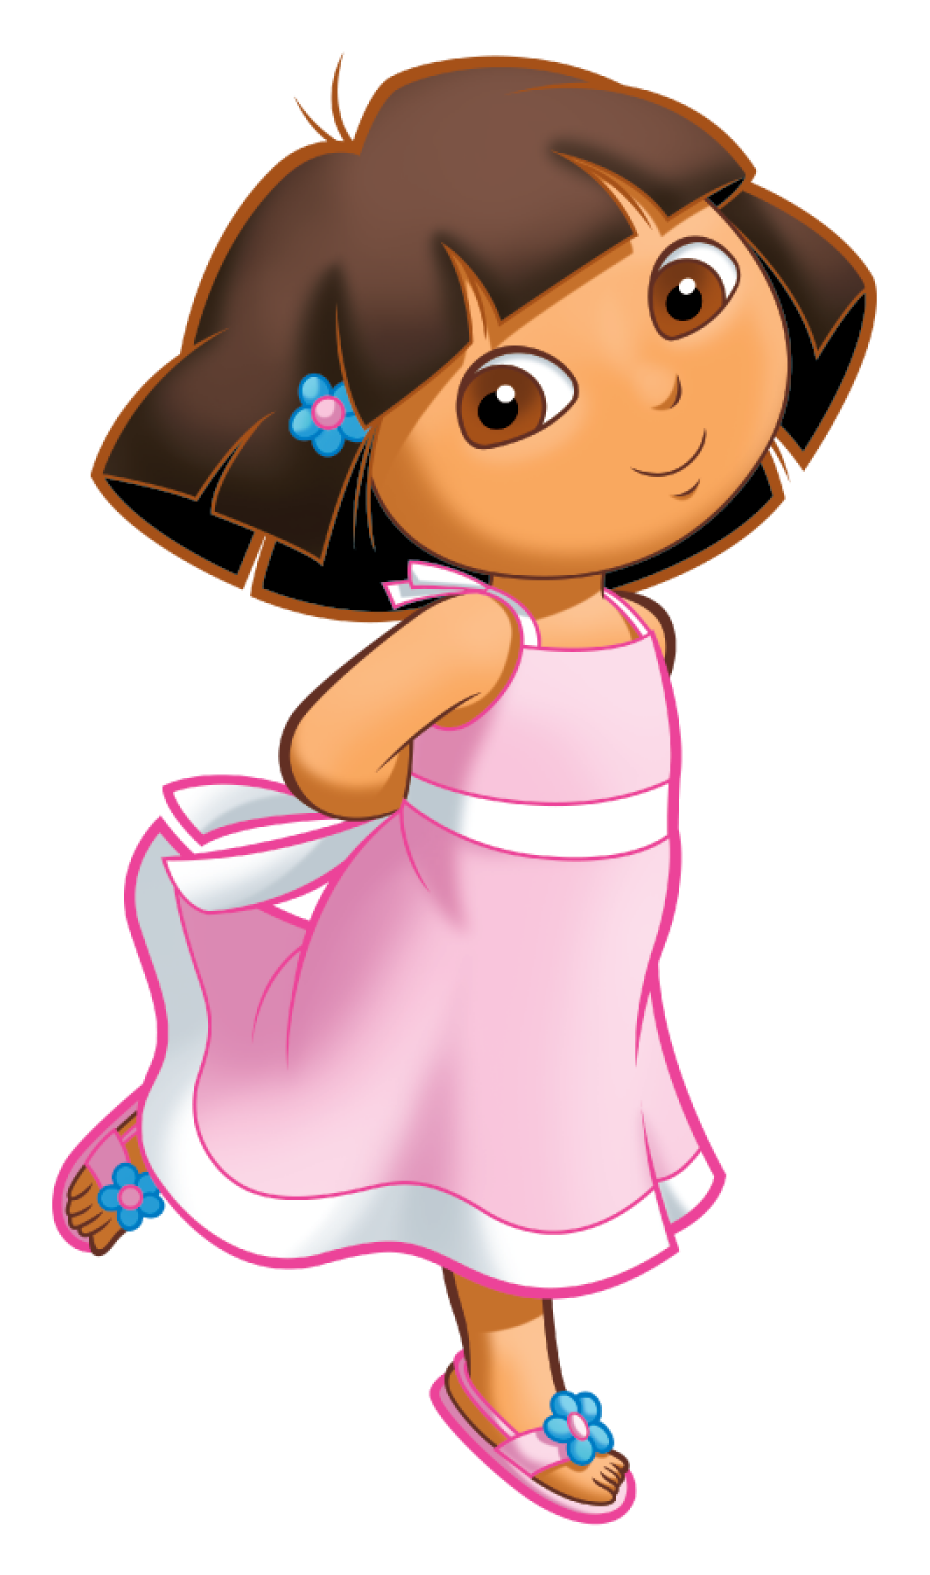 png dora transparent dora png images pluspng dora clipart black and white face dora clipart black and white face